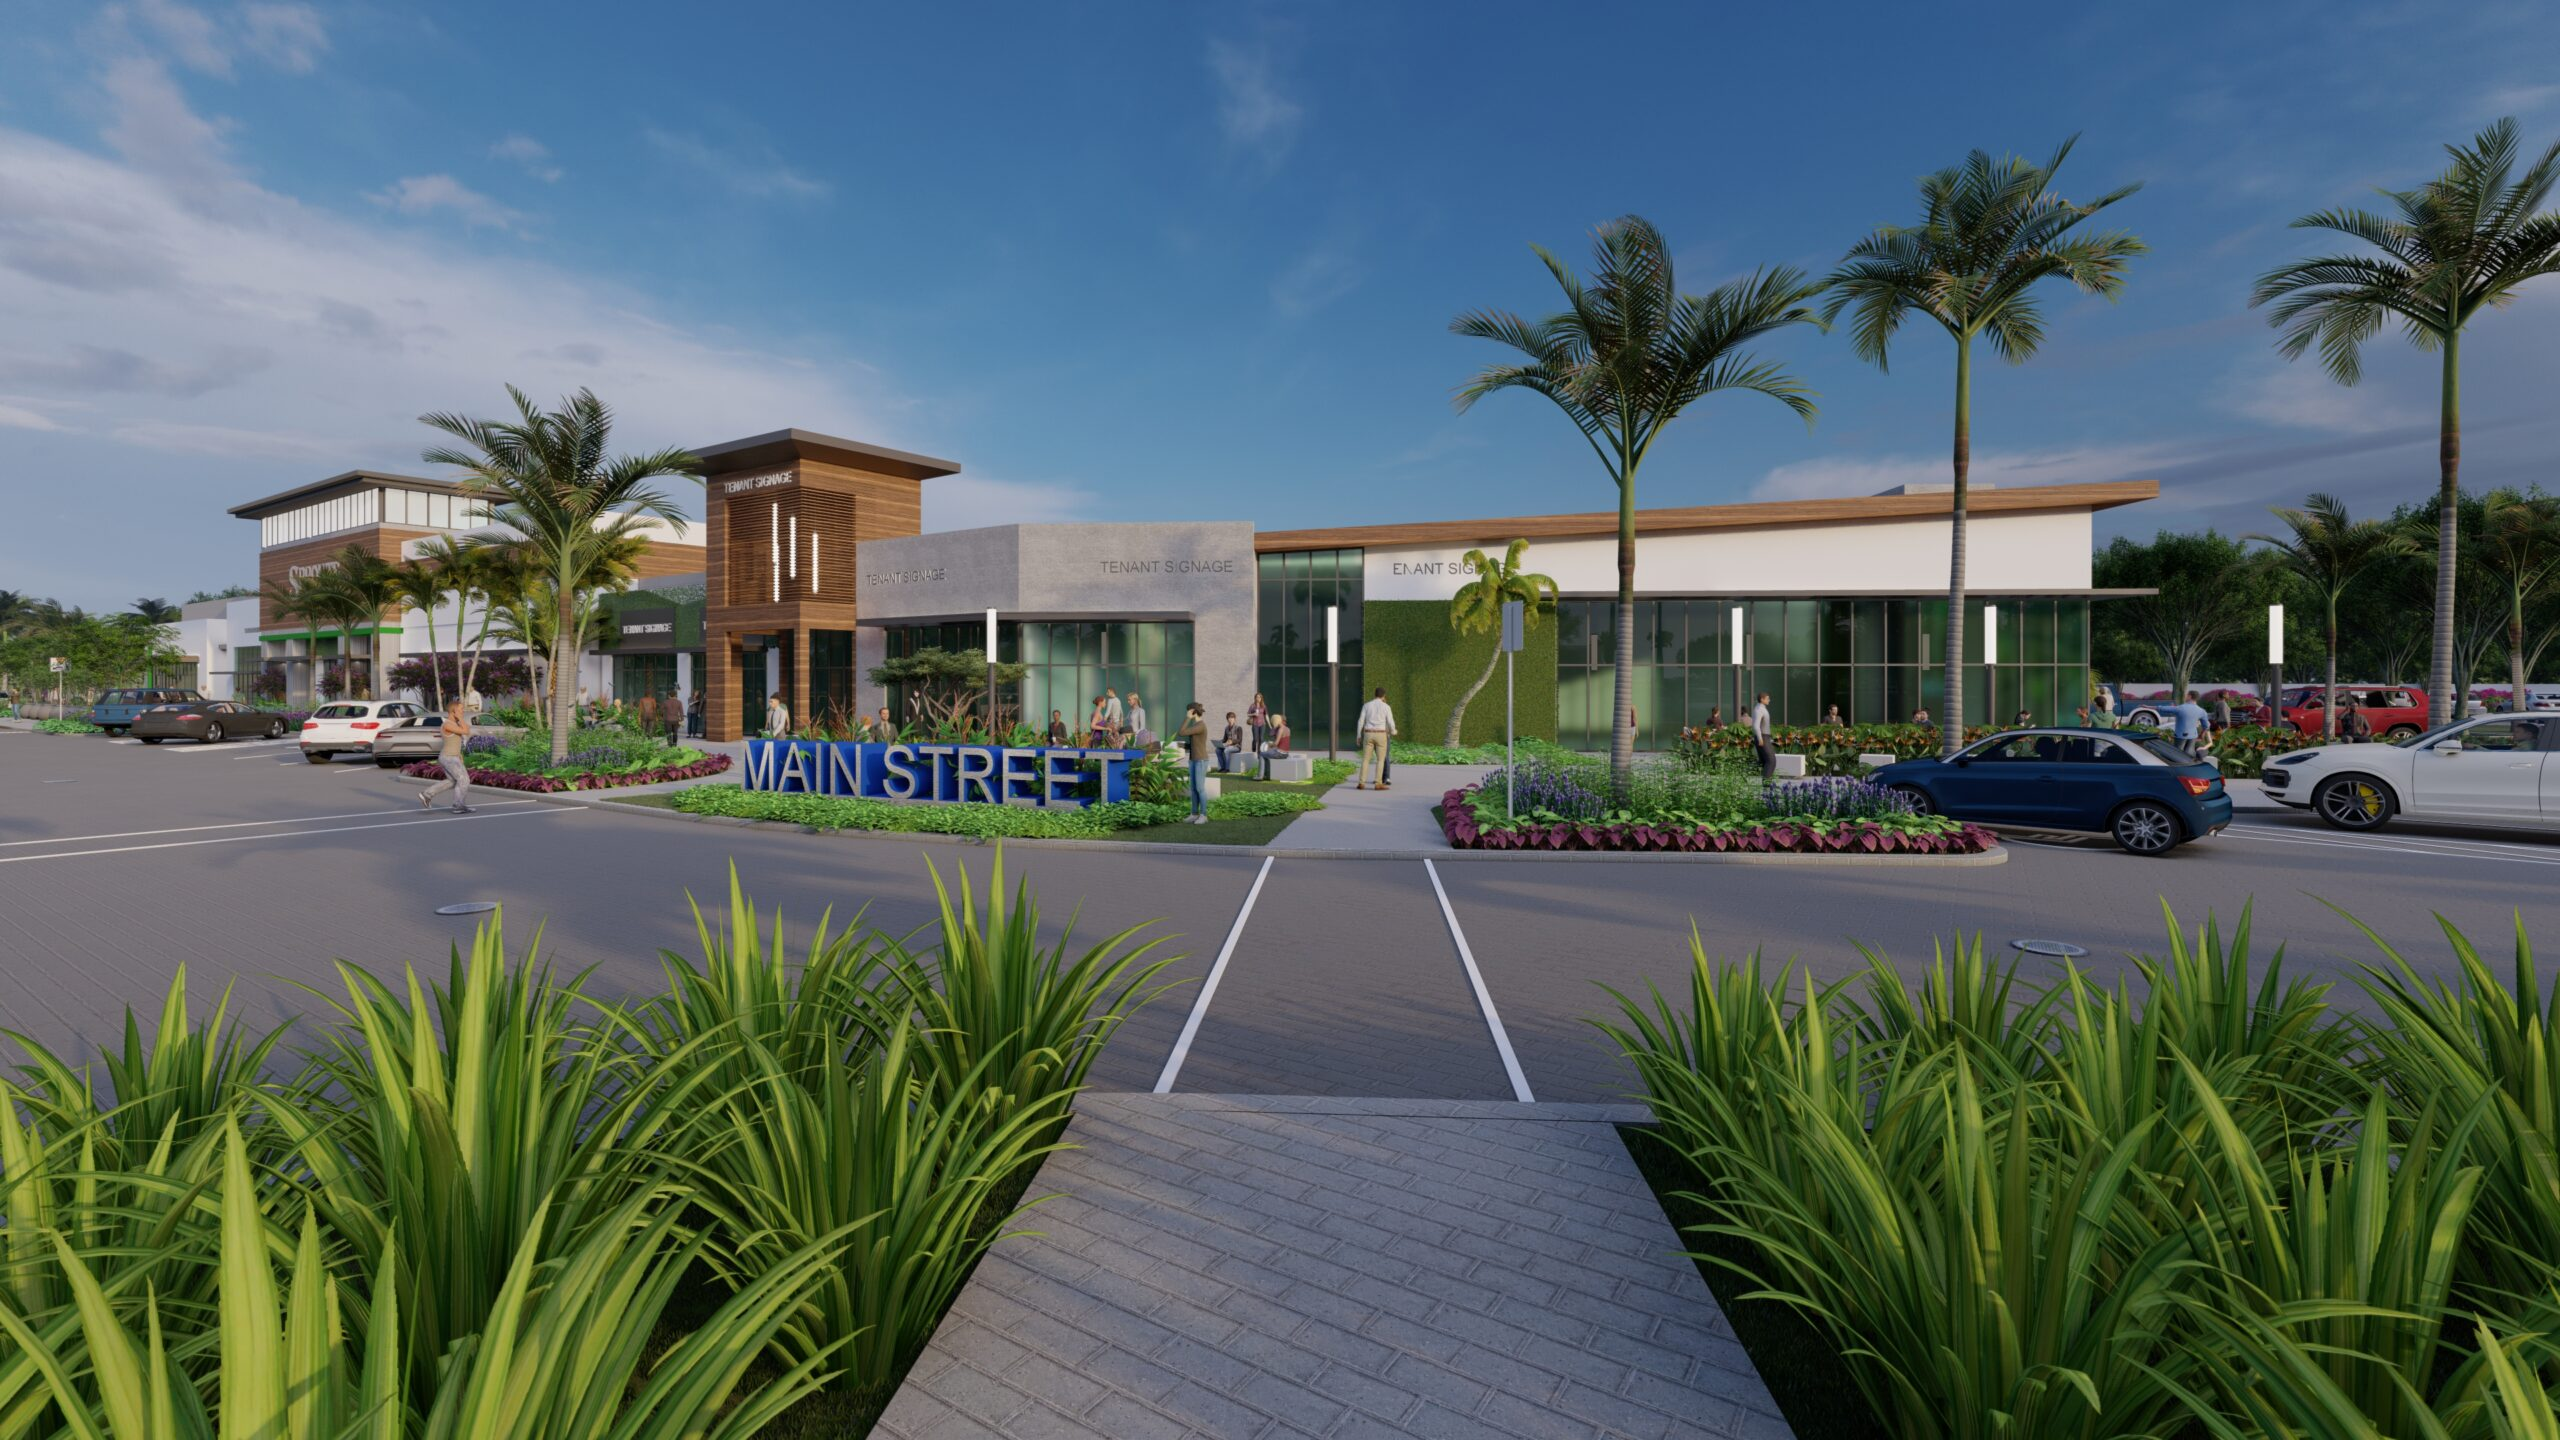 PEBB Enterprises and Banyan Development Obtain $26.95 Million Construction Loan for Mainstreet at Boynton